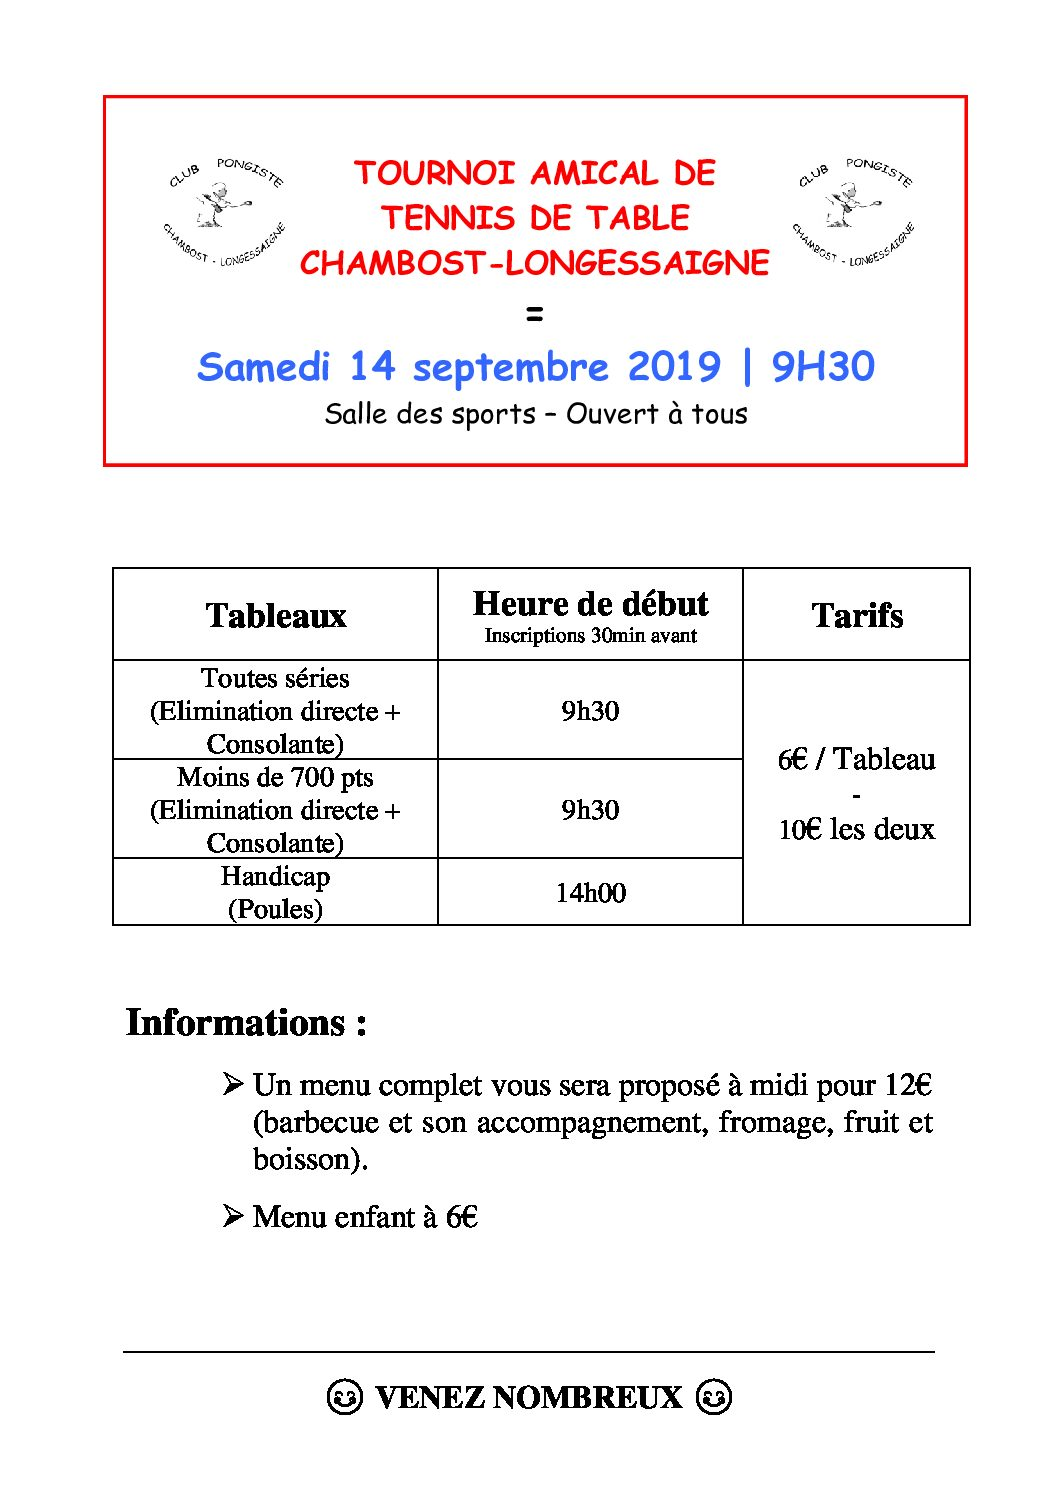 14 septembre 2019 : tournoi annuel du club de tennis de table de Chambost-Longessaigne (CPCL)